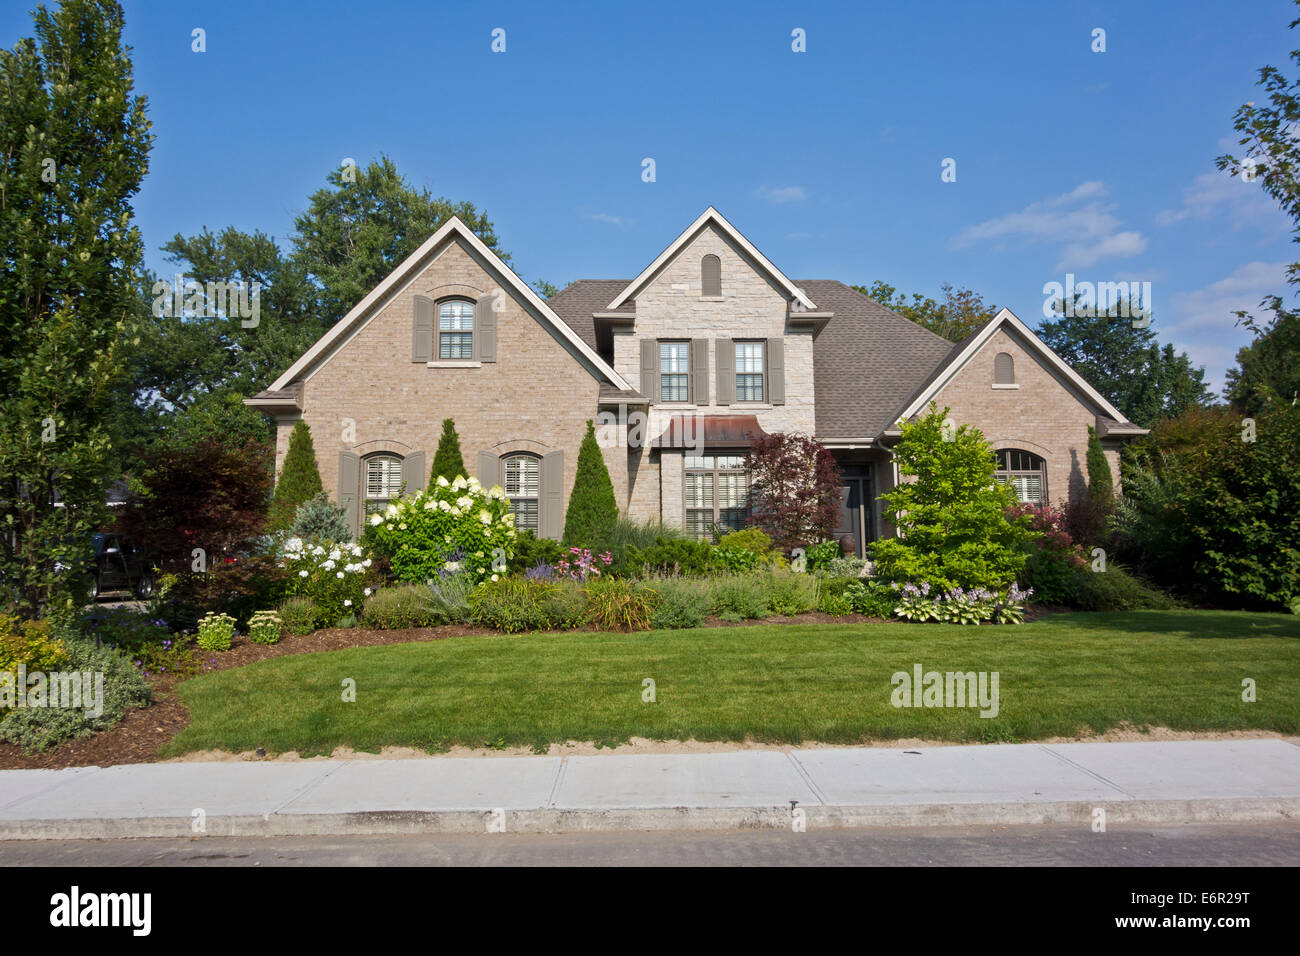 Attractive older and wealthy home with landscaped yard and flowers in St. Catharines, Ontario, Canada. - Stock Image